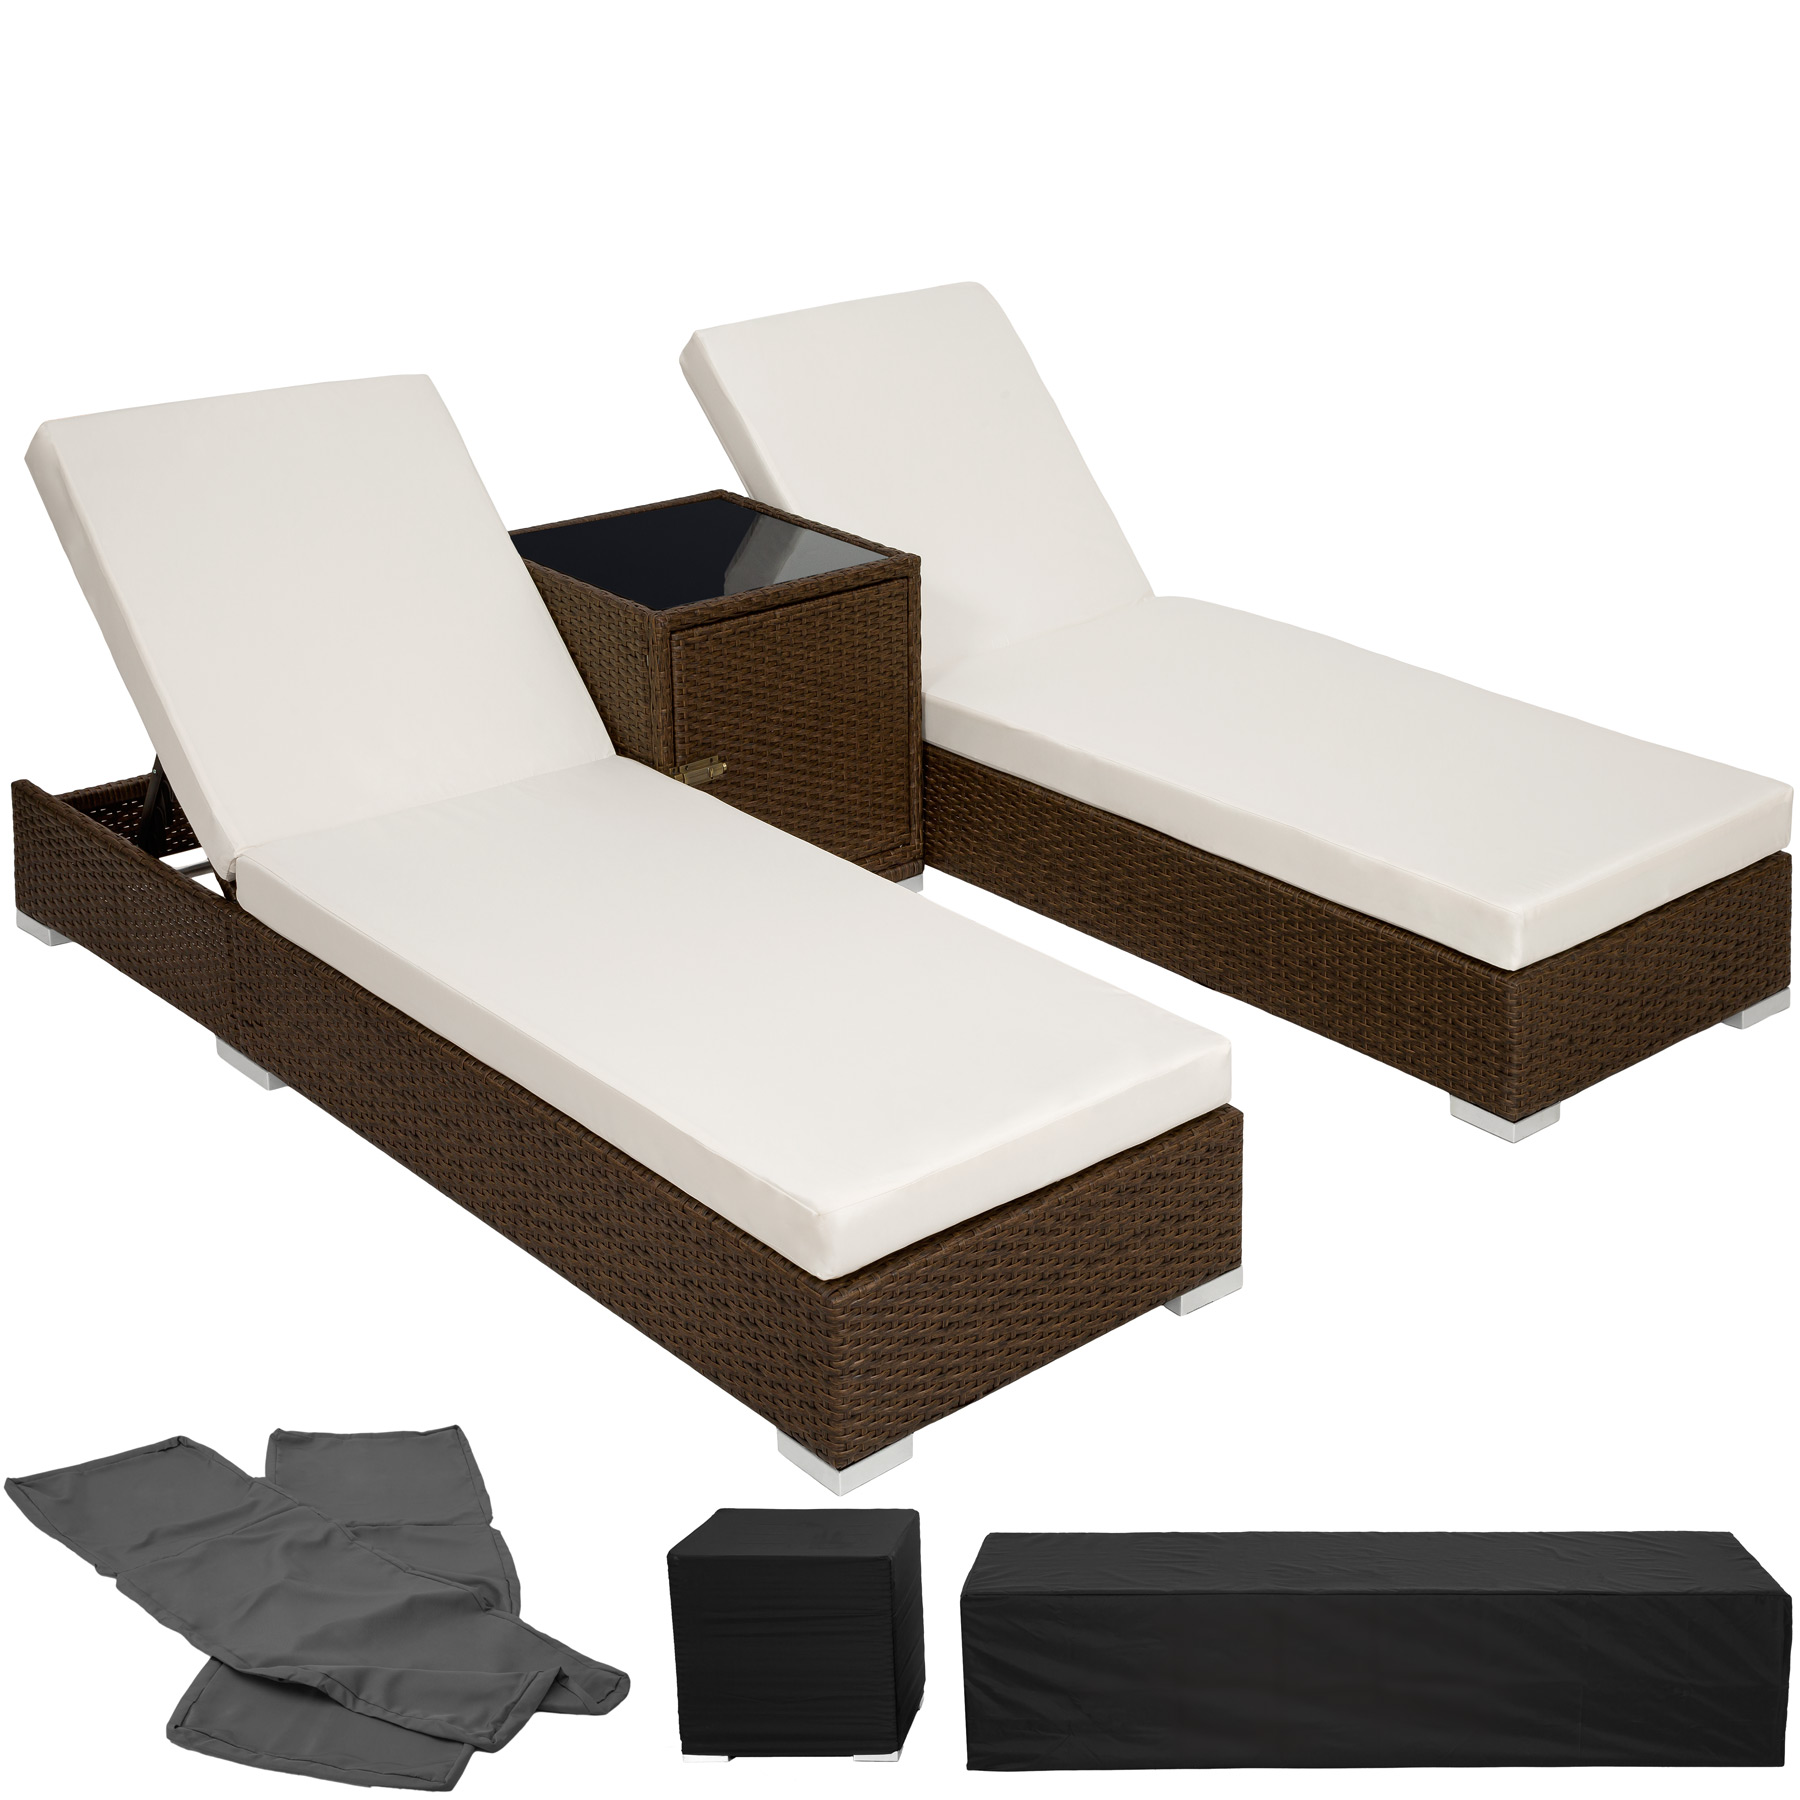 2x alu polyrattan sonnenliege tisch gartenliege rattan liege gartenm bel. Black Bedroom Furniture Sets. Home Design Ideas